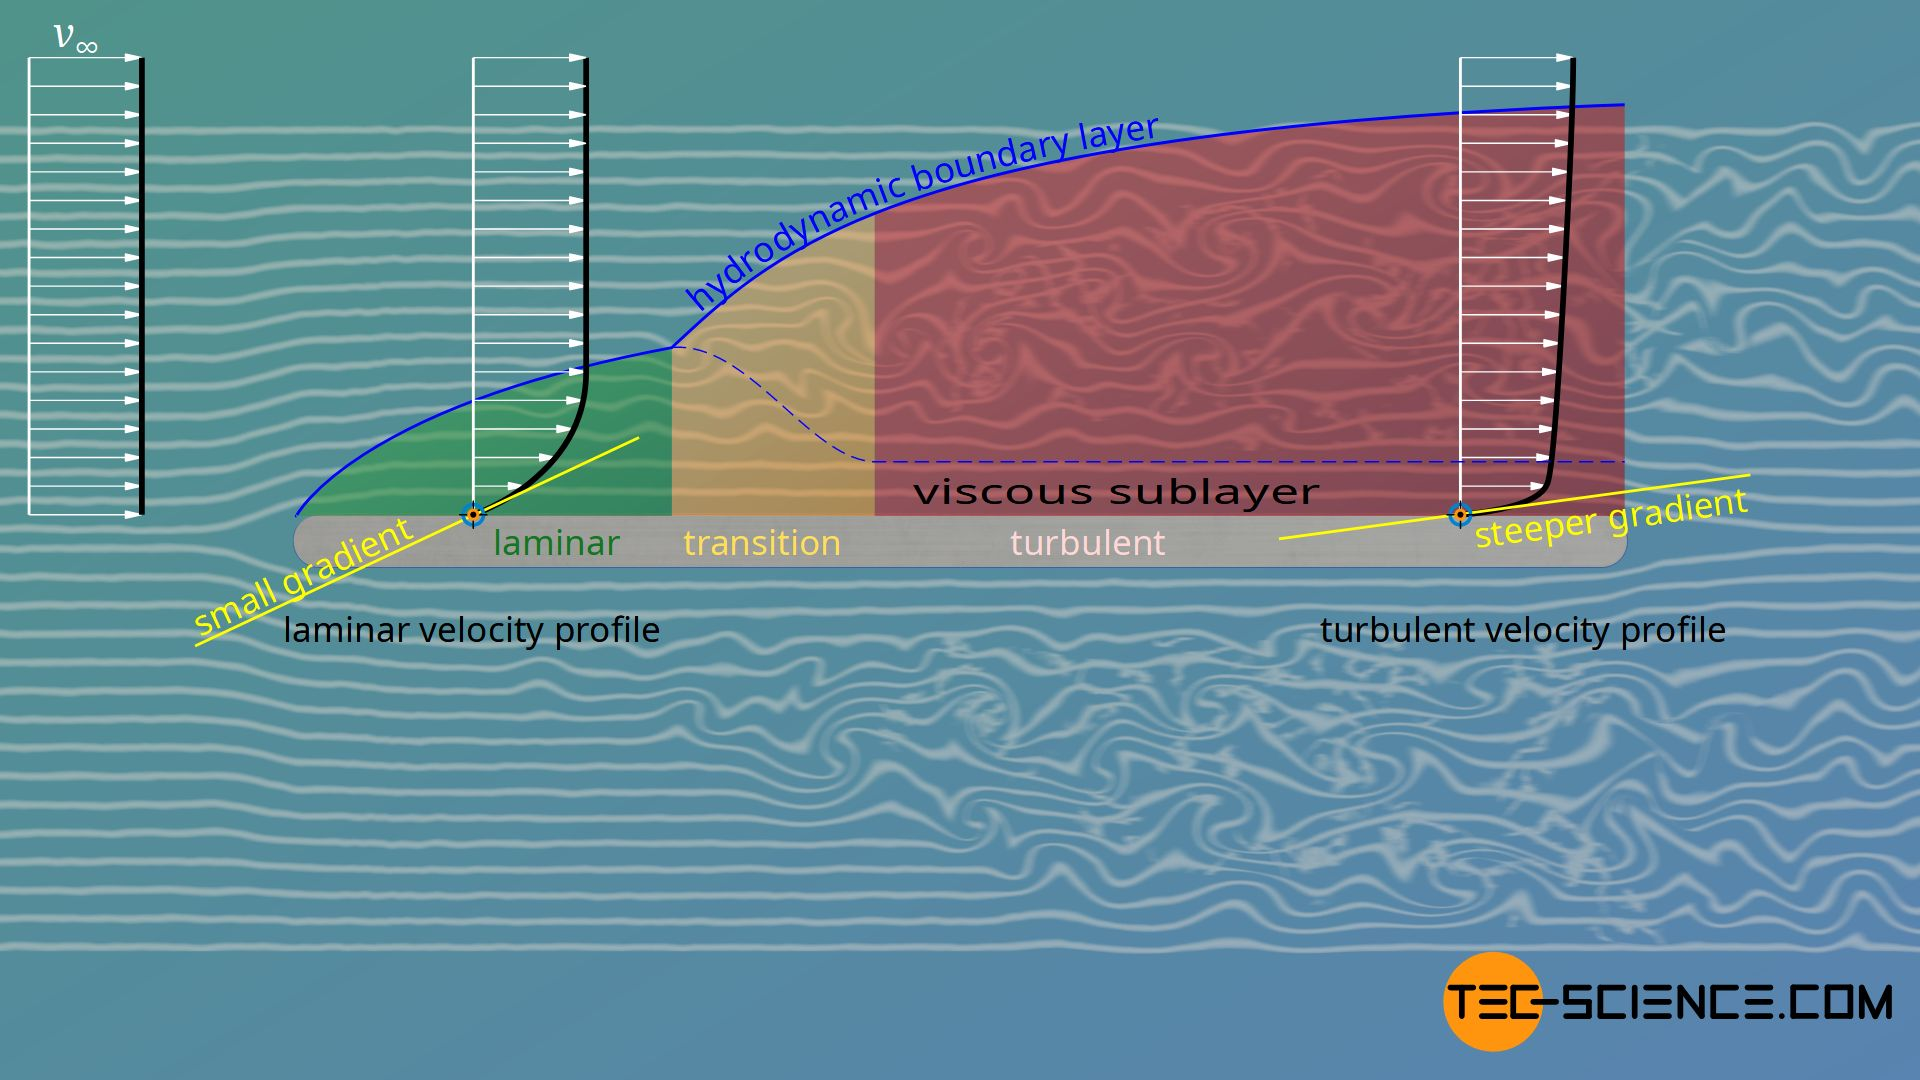 Velocity gradients in a laminar and turbulent boundary layer